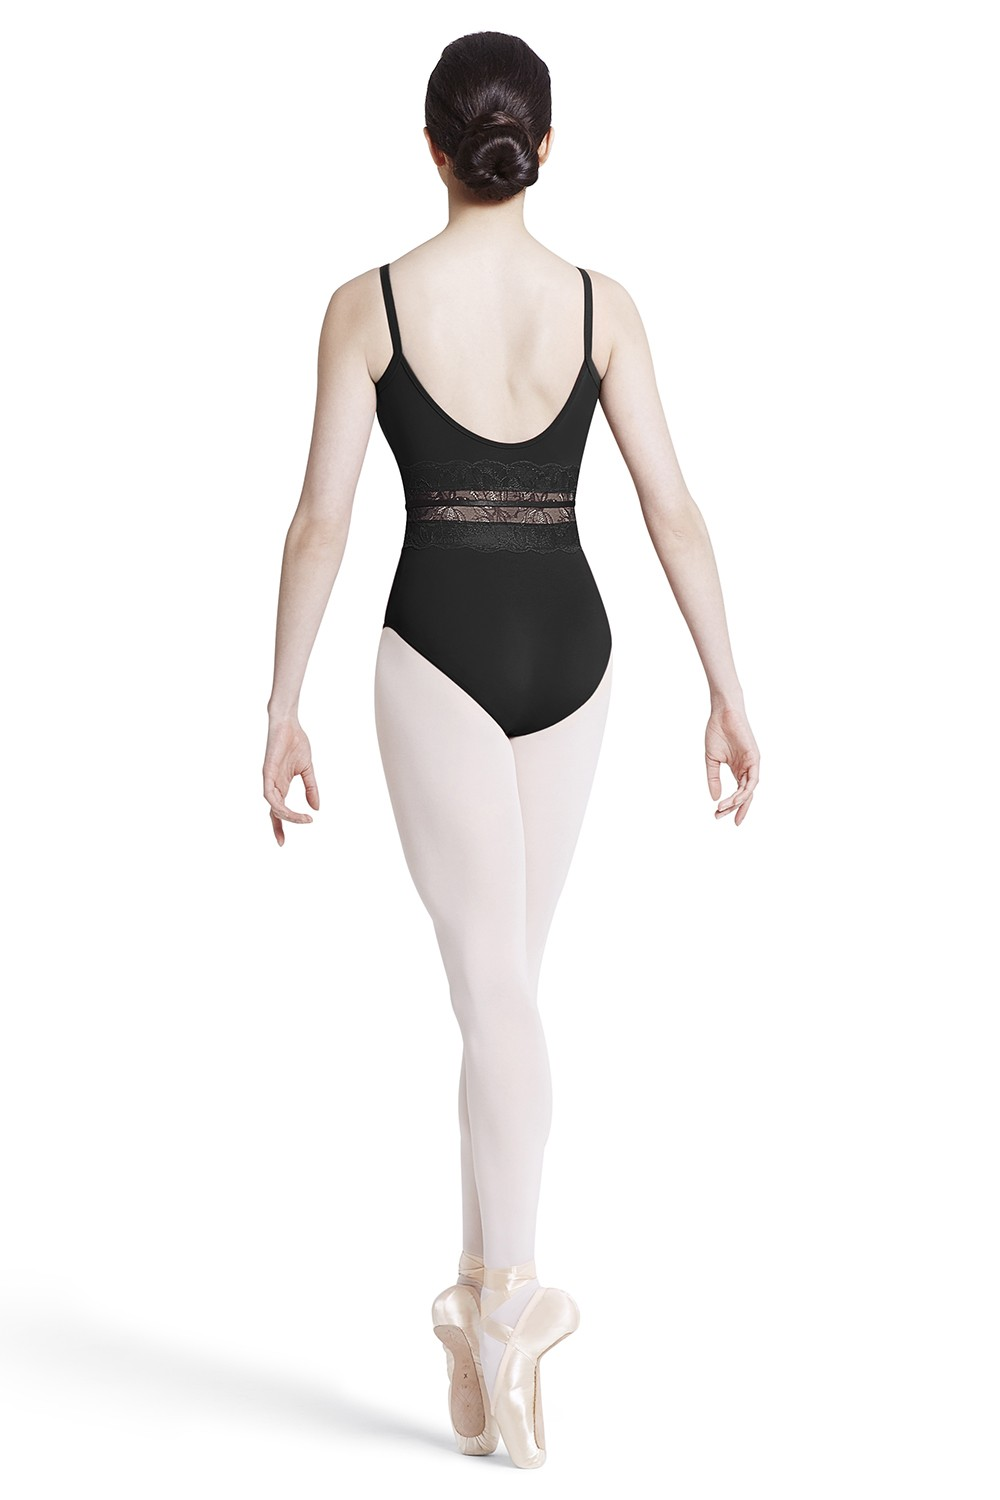 Lace Waist Camisole Leotard Women's Dance Leotards